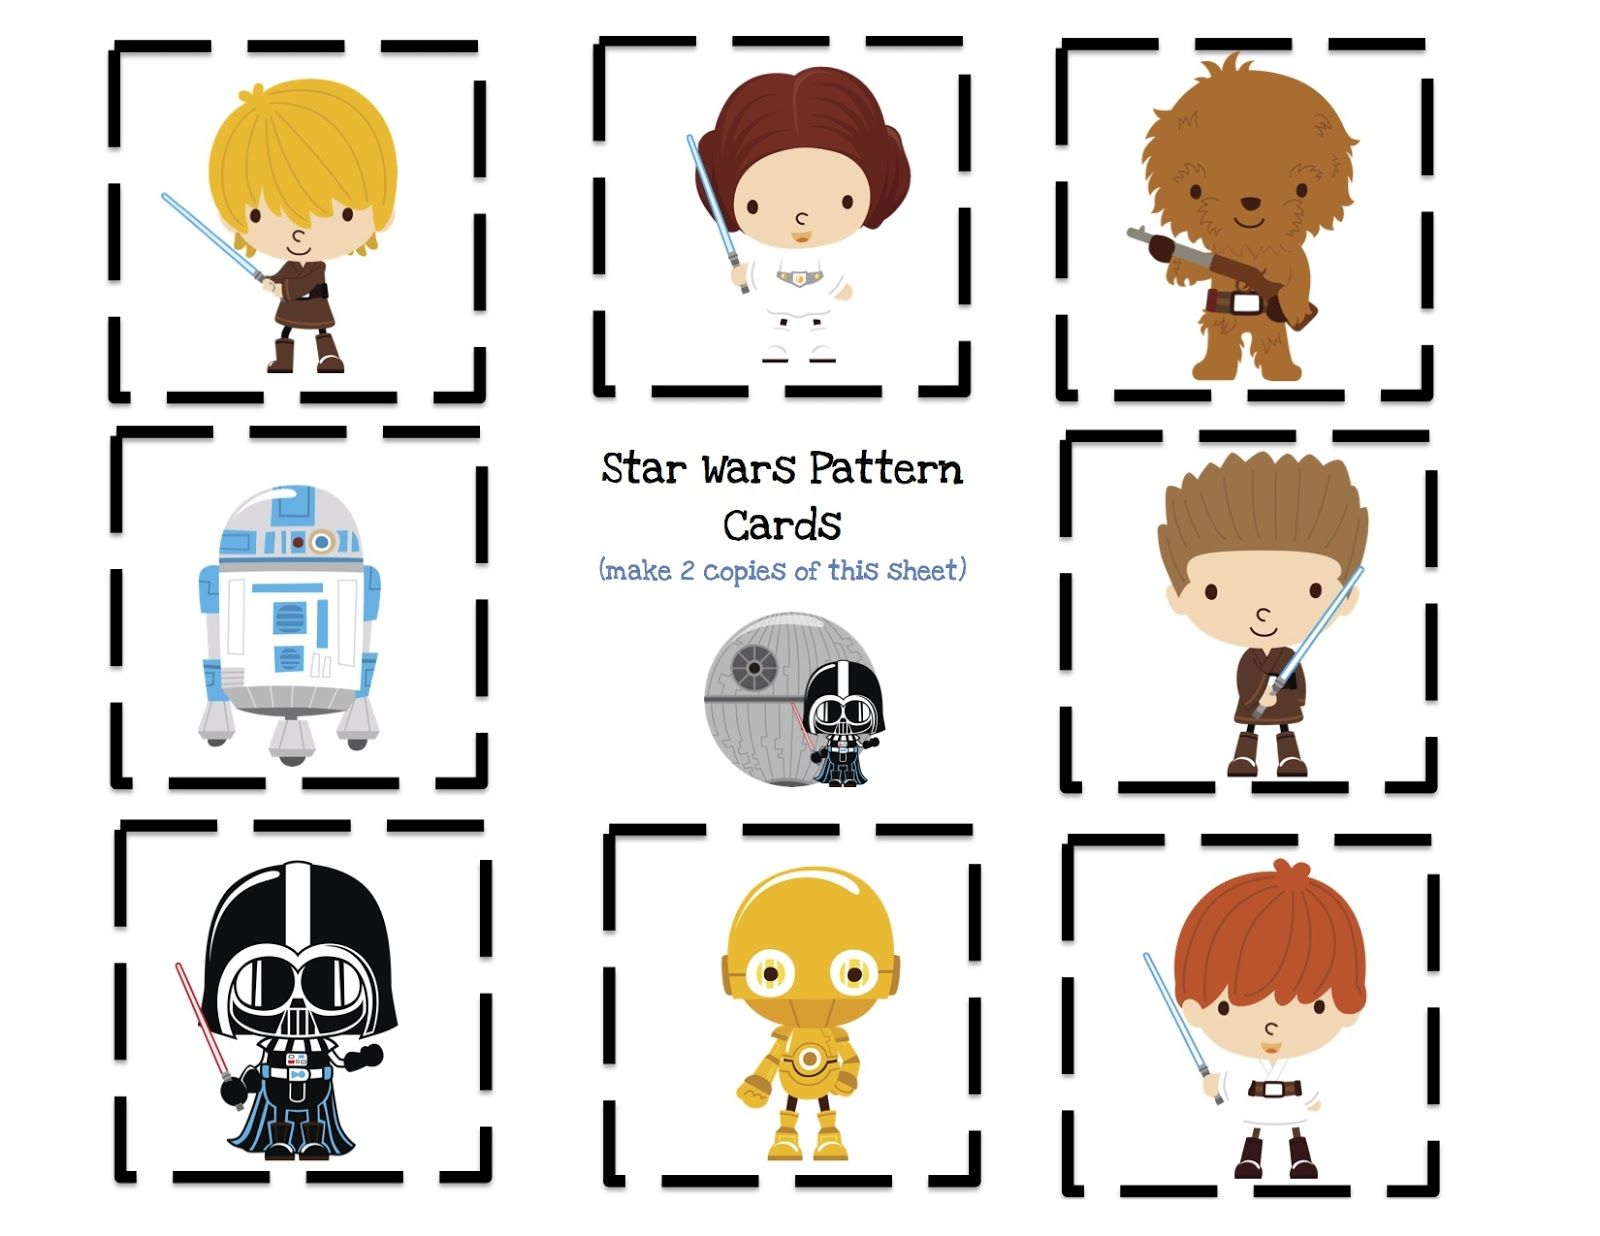 Star Wars Pattern Cards